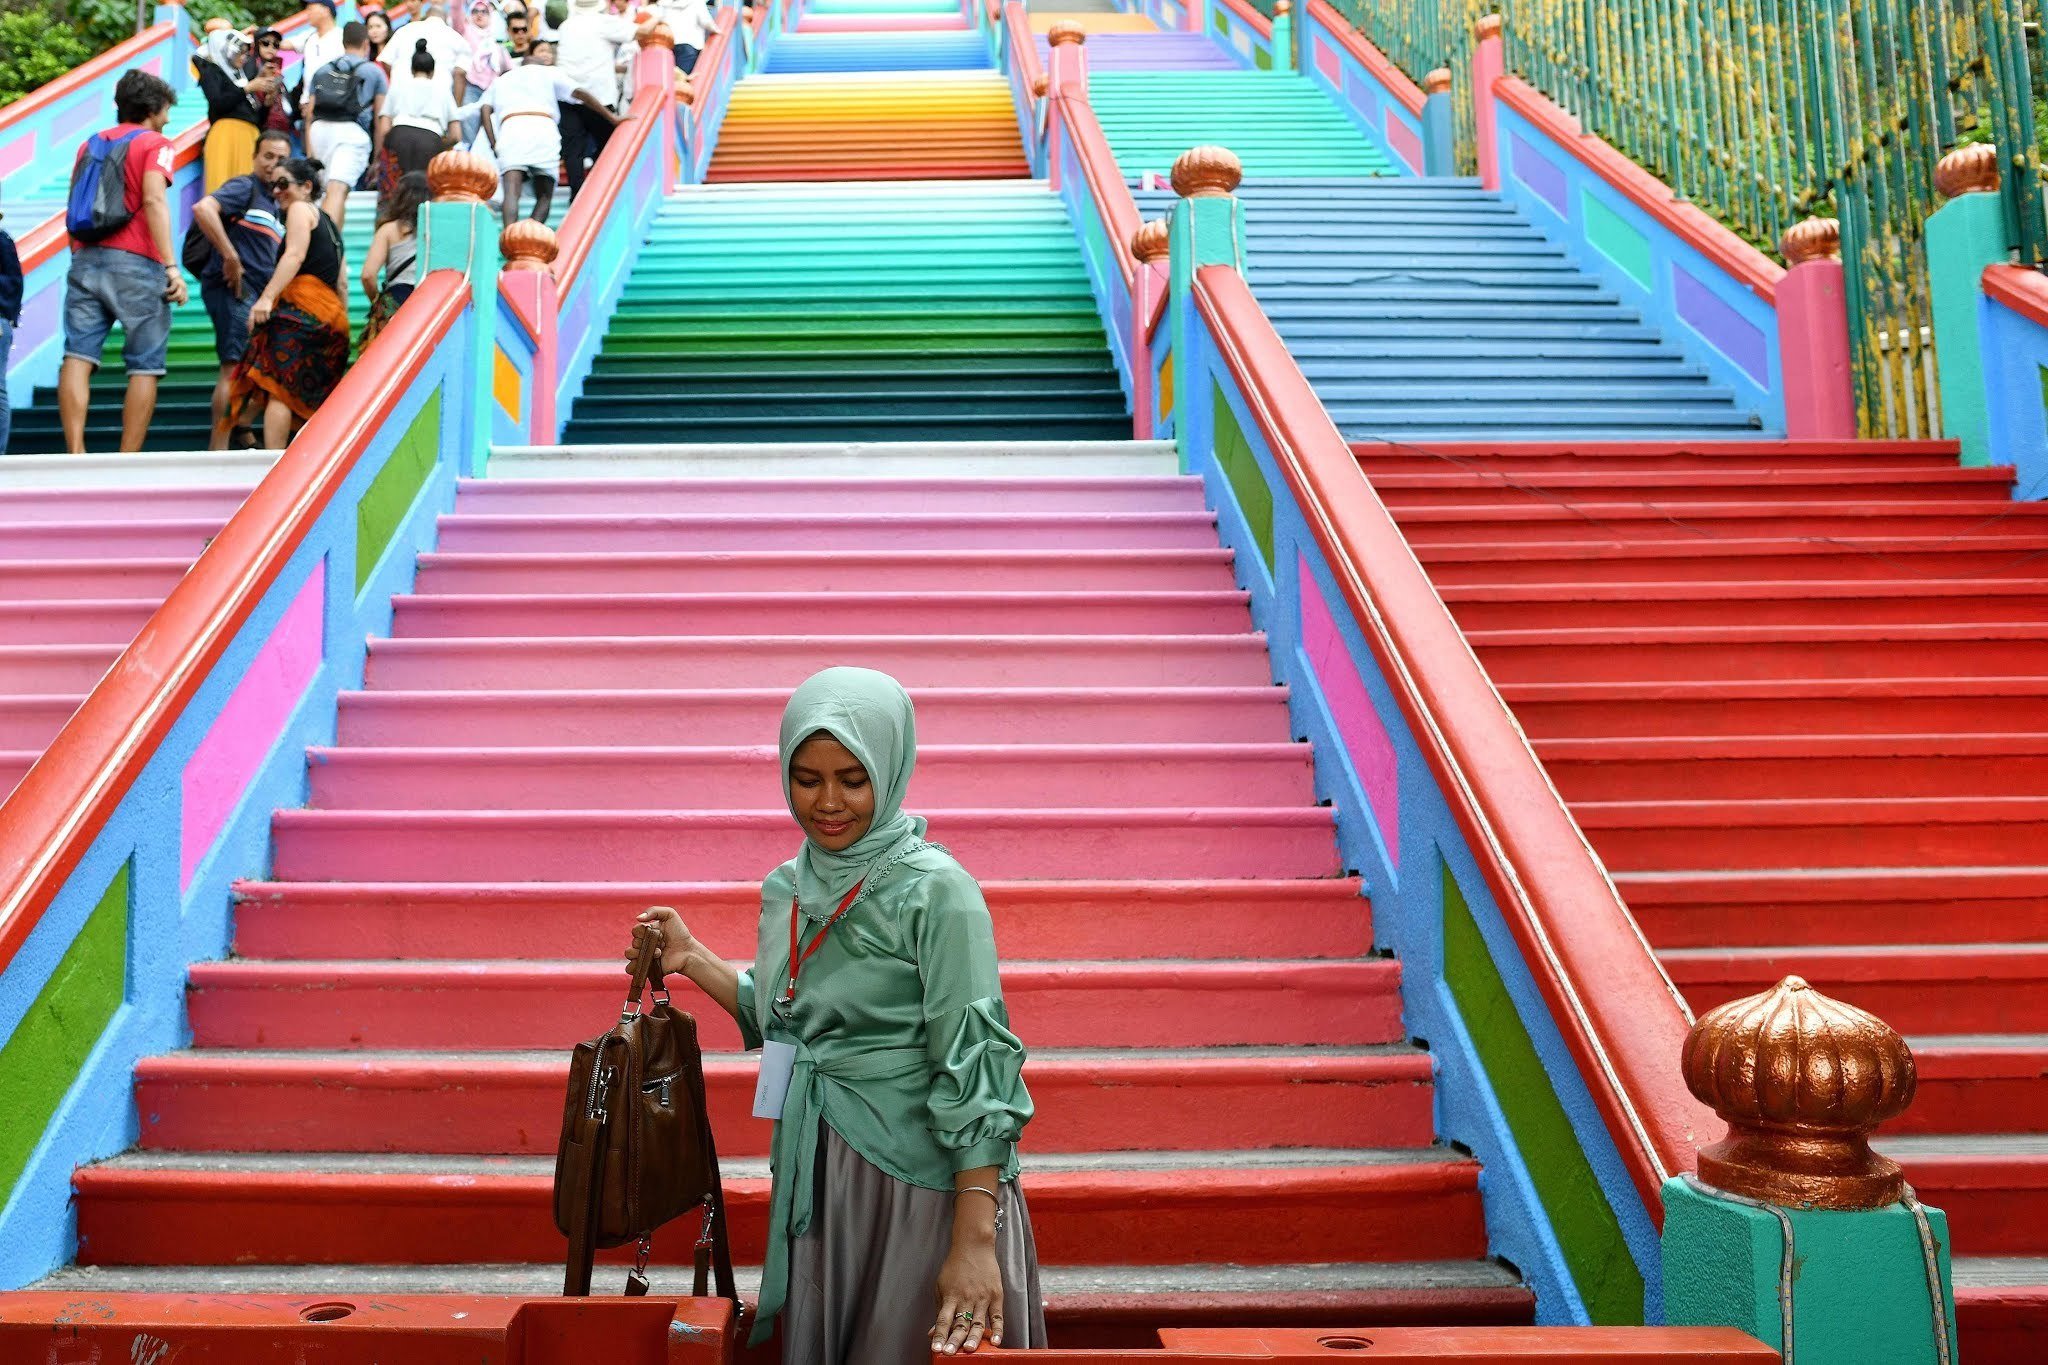 The temple is visited not just by the Hindu population of Malaysia but also by tourists. (AFP)